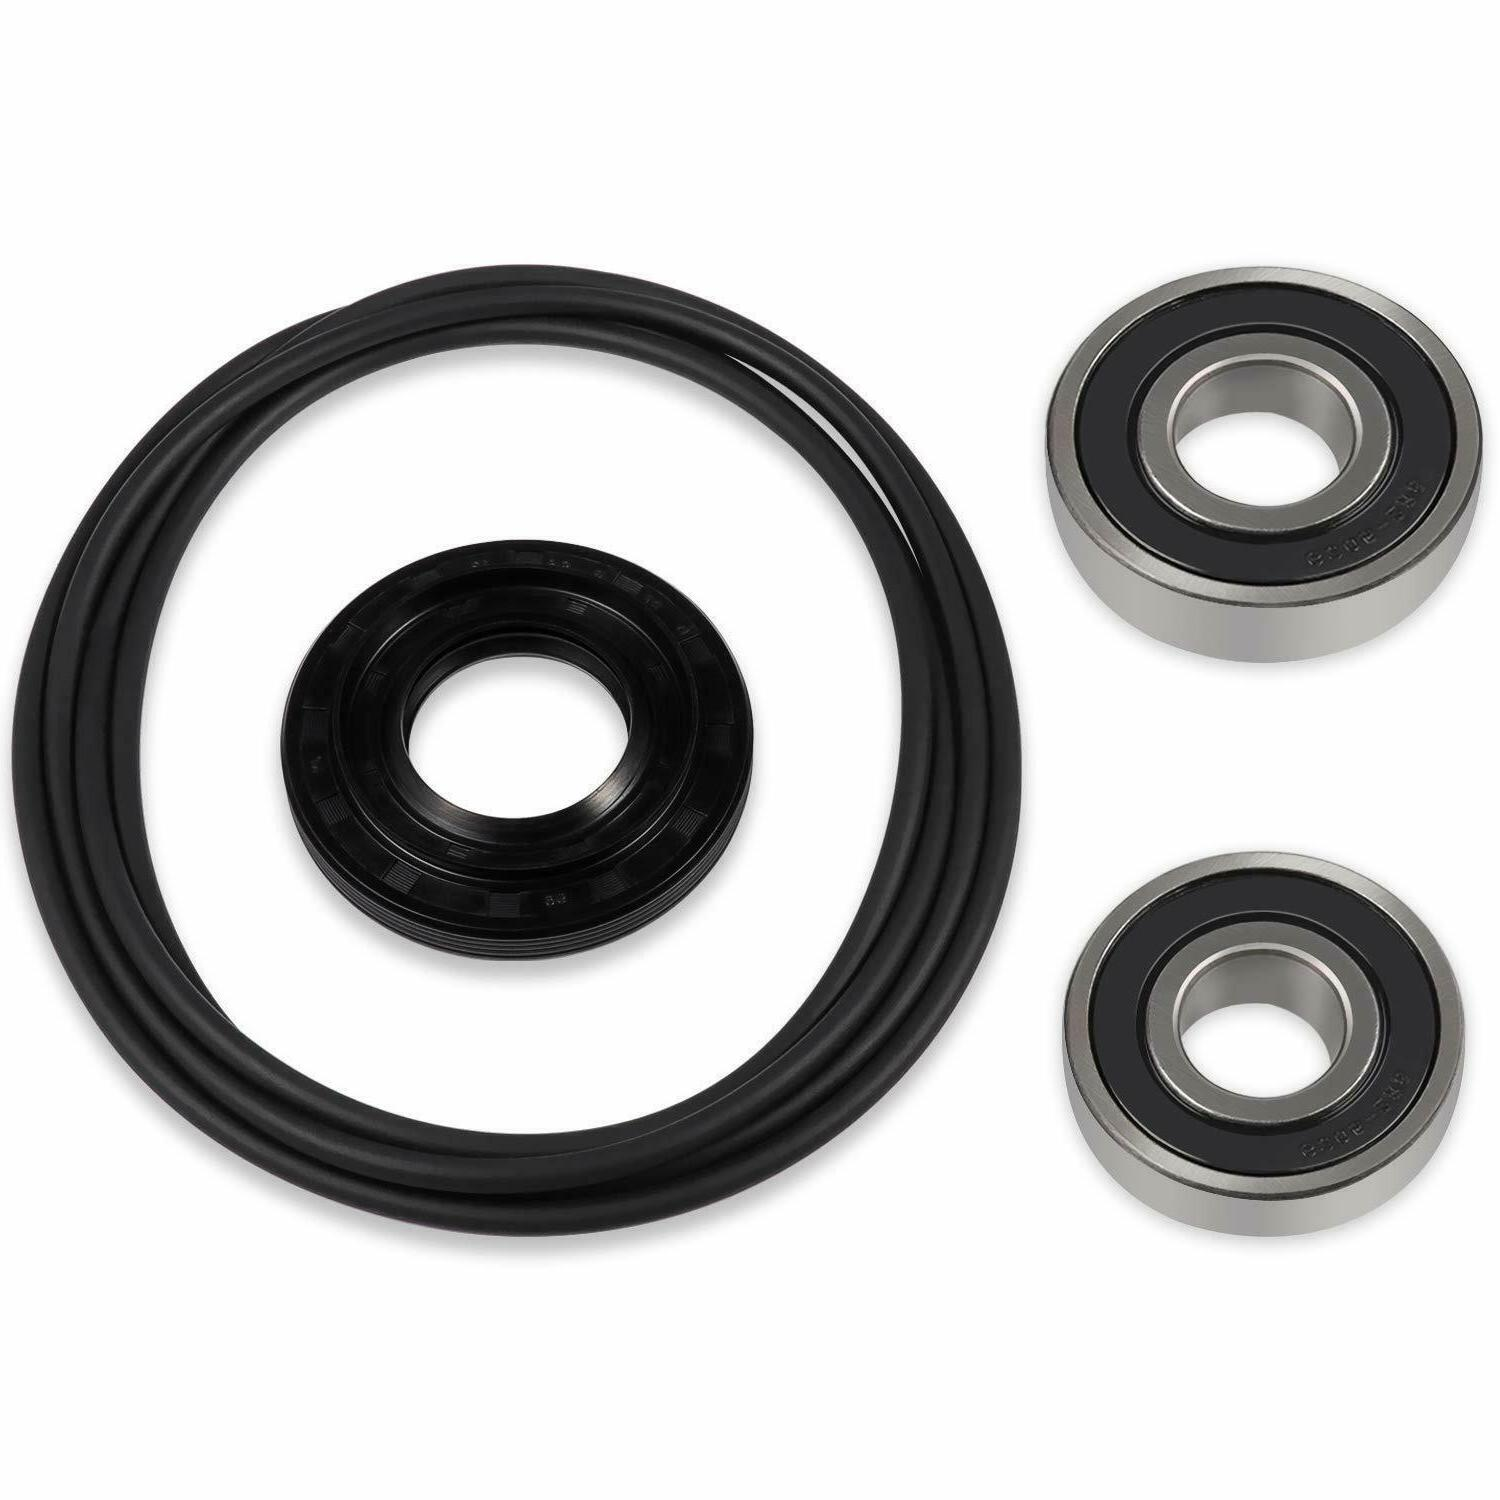 Front Load Bearings Kit for LG and Replacement